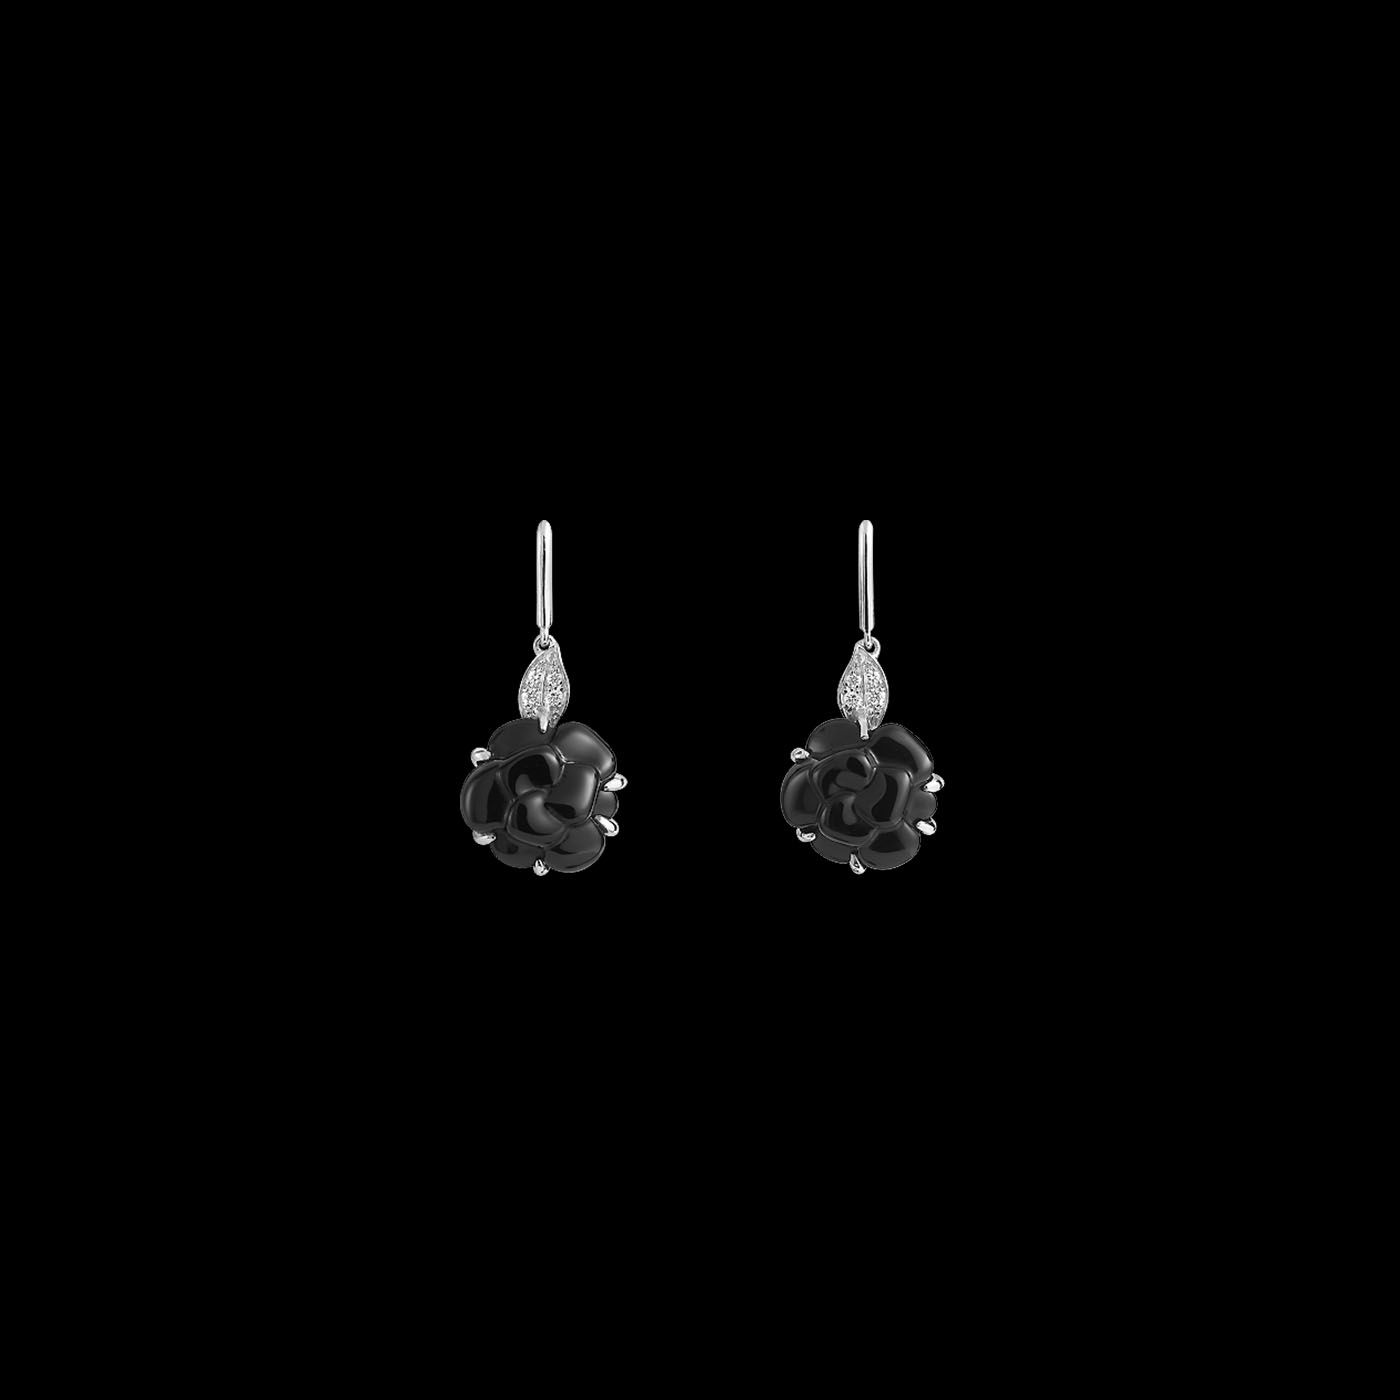 2ac2570045d11f Camélia Earrings in 18K white gold, onyx and diamonds. - Overview - CHANEL